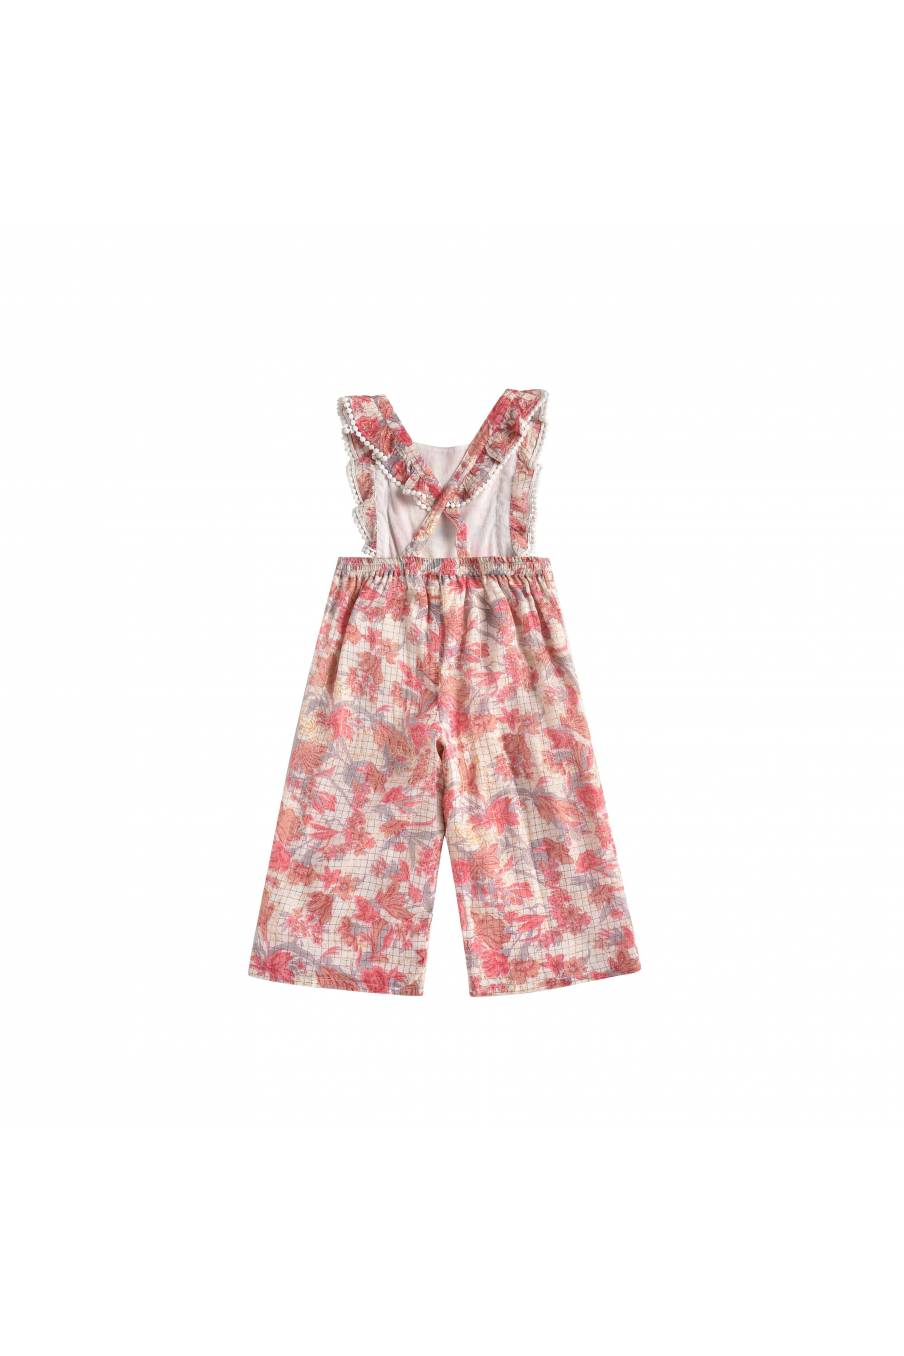 Overalls Leandra Pink Flowers